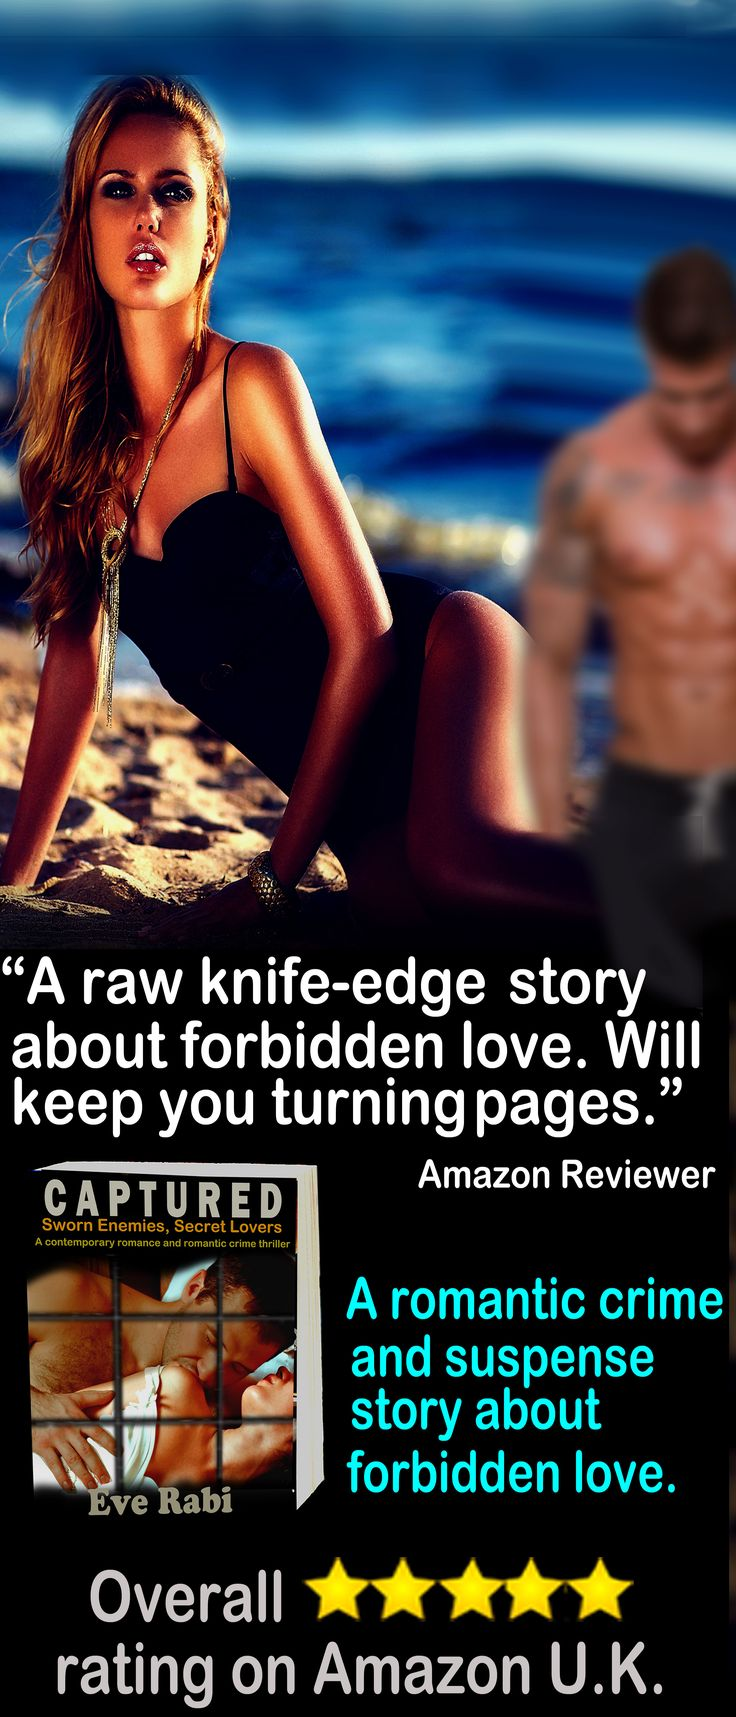 """""""My husband has never held me like that. I'd remember if he did.""""  #Followback  Amazon U.K:  http://www.amazon.co.uk/dp/B0088IBIZC Amazon U.S: http://www.amazon.com/dp/B0088IBIZC Amazon Aus: http://www.amazon.com.au/dp/B0088IBIZC Amazon CA: http://www.amazon.ca/dp/B0088IBIZC Amazon IN: http://www.amazon.in/dp/B0088IBIZC"""